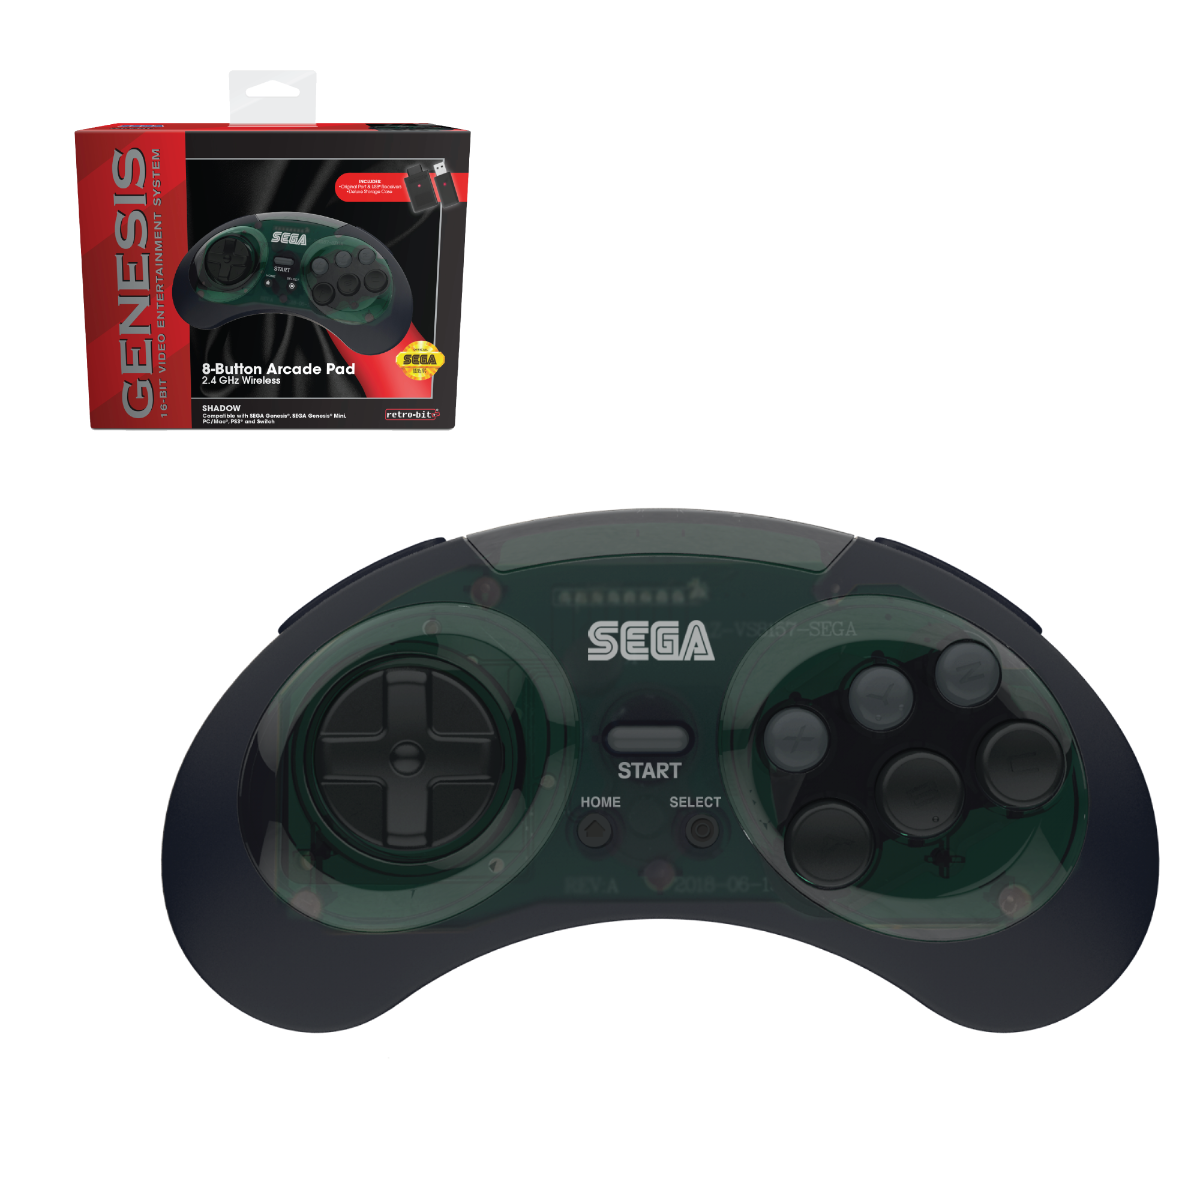 SEGA, Genesis, 2.4 GHz Wireless, 8-Button, Arcade Pad, Controller, USB, PC, Mac, PS3, Switch, Genesis Mini, Shadow